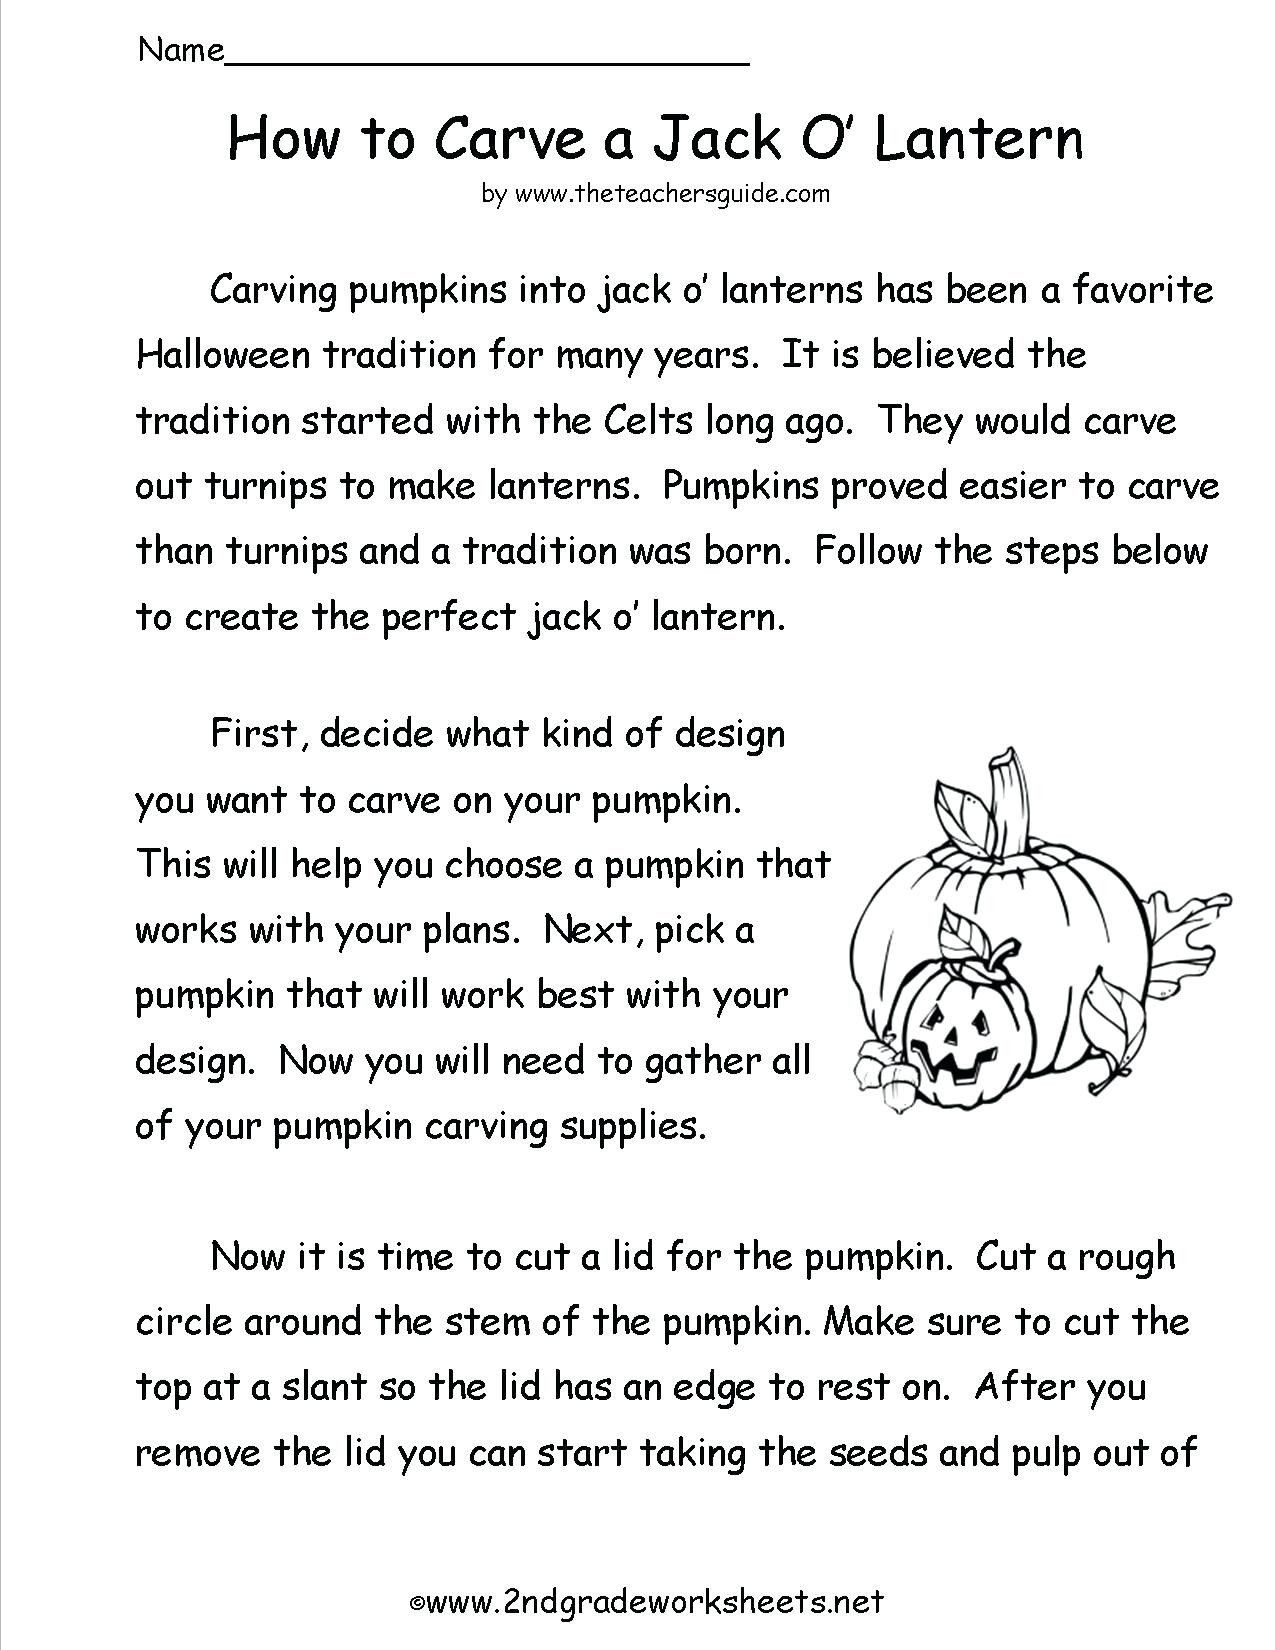 Free Kindergarten Halloween Worksheets Printable 3Rd Grade